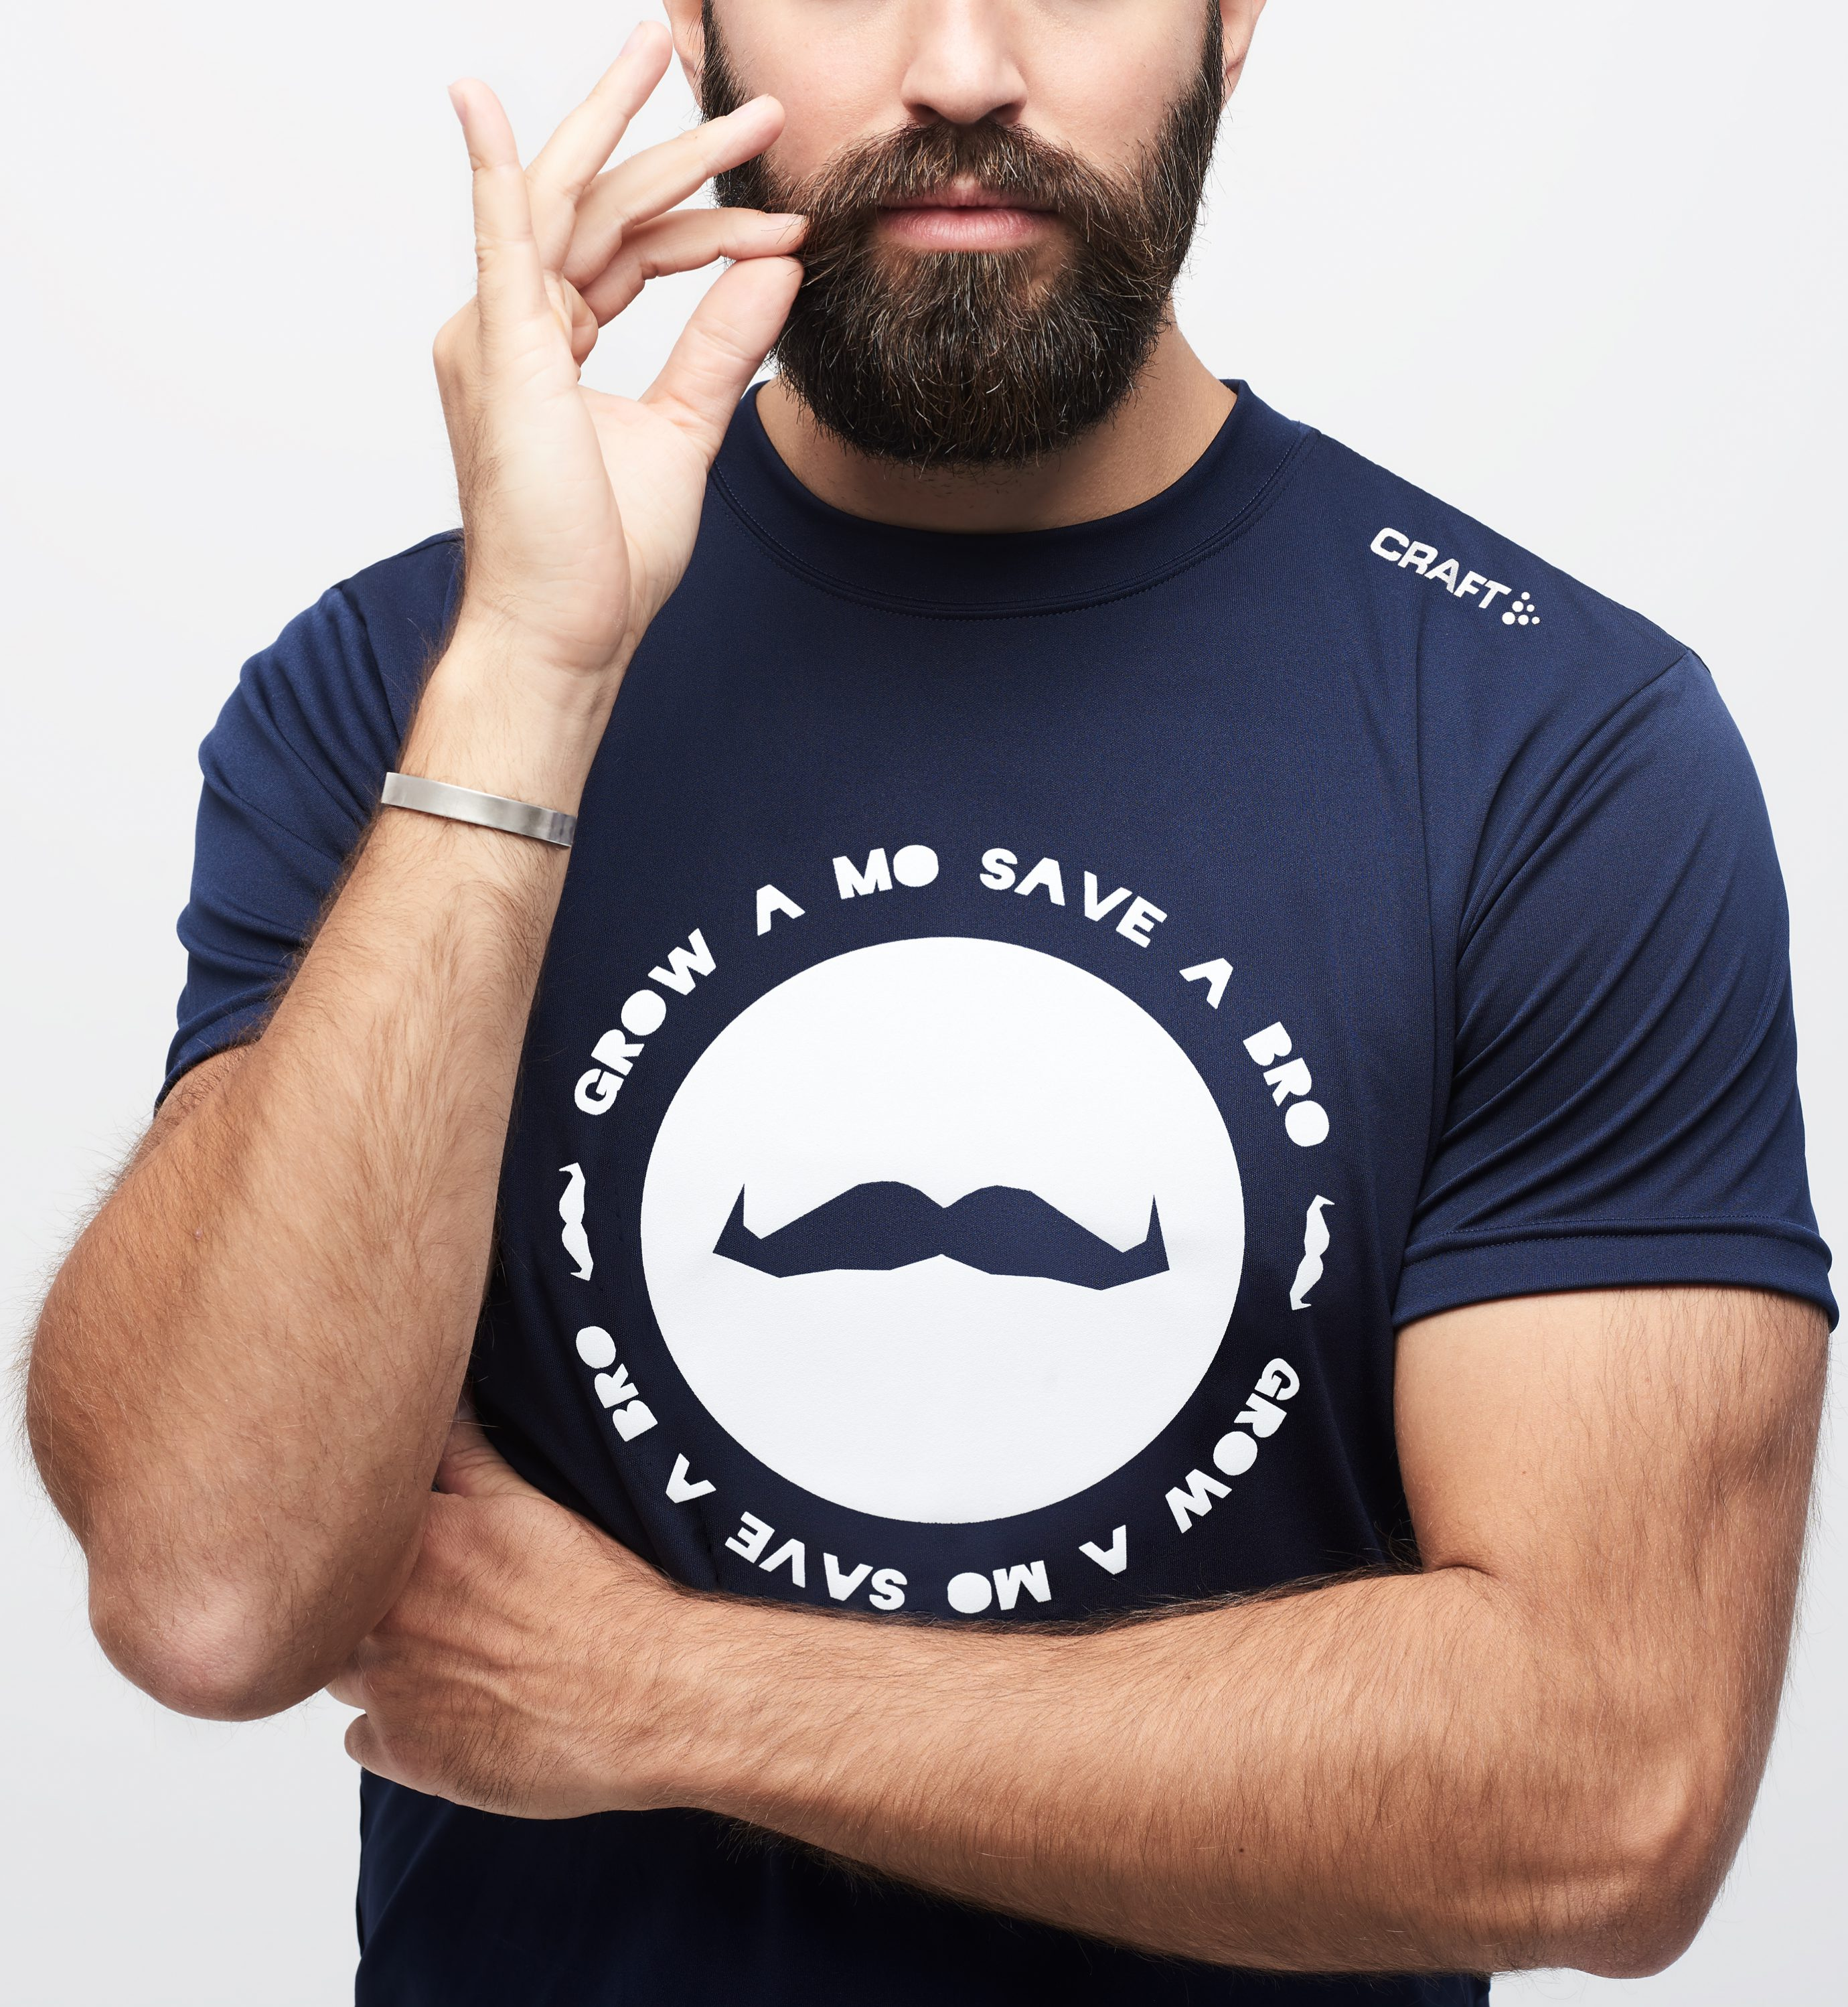 Movember Foundation – Make a contribution